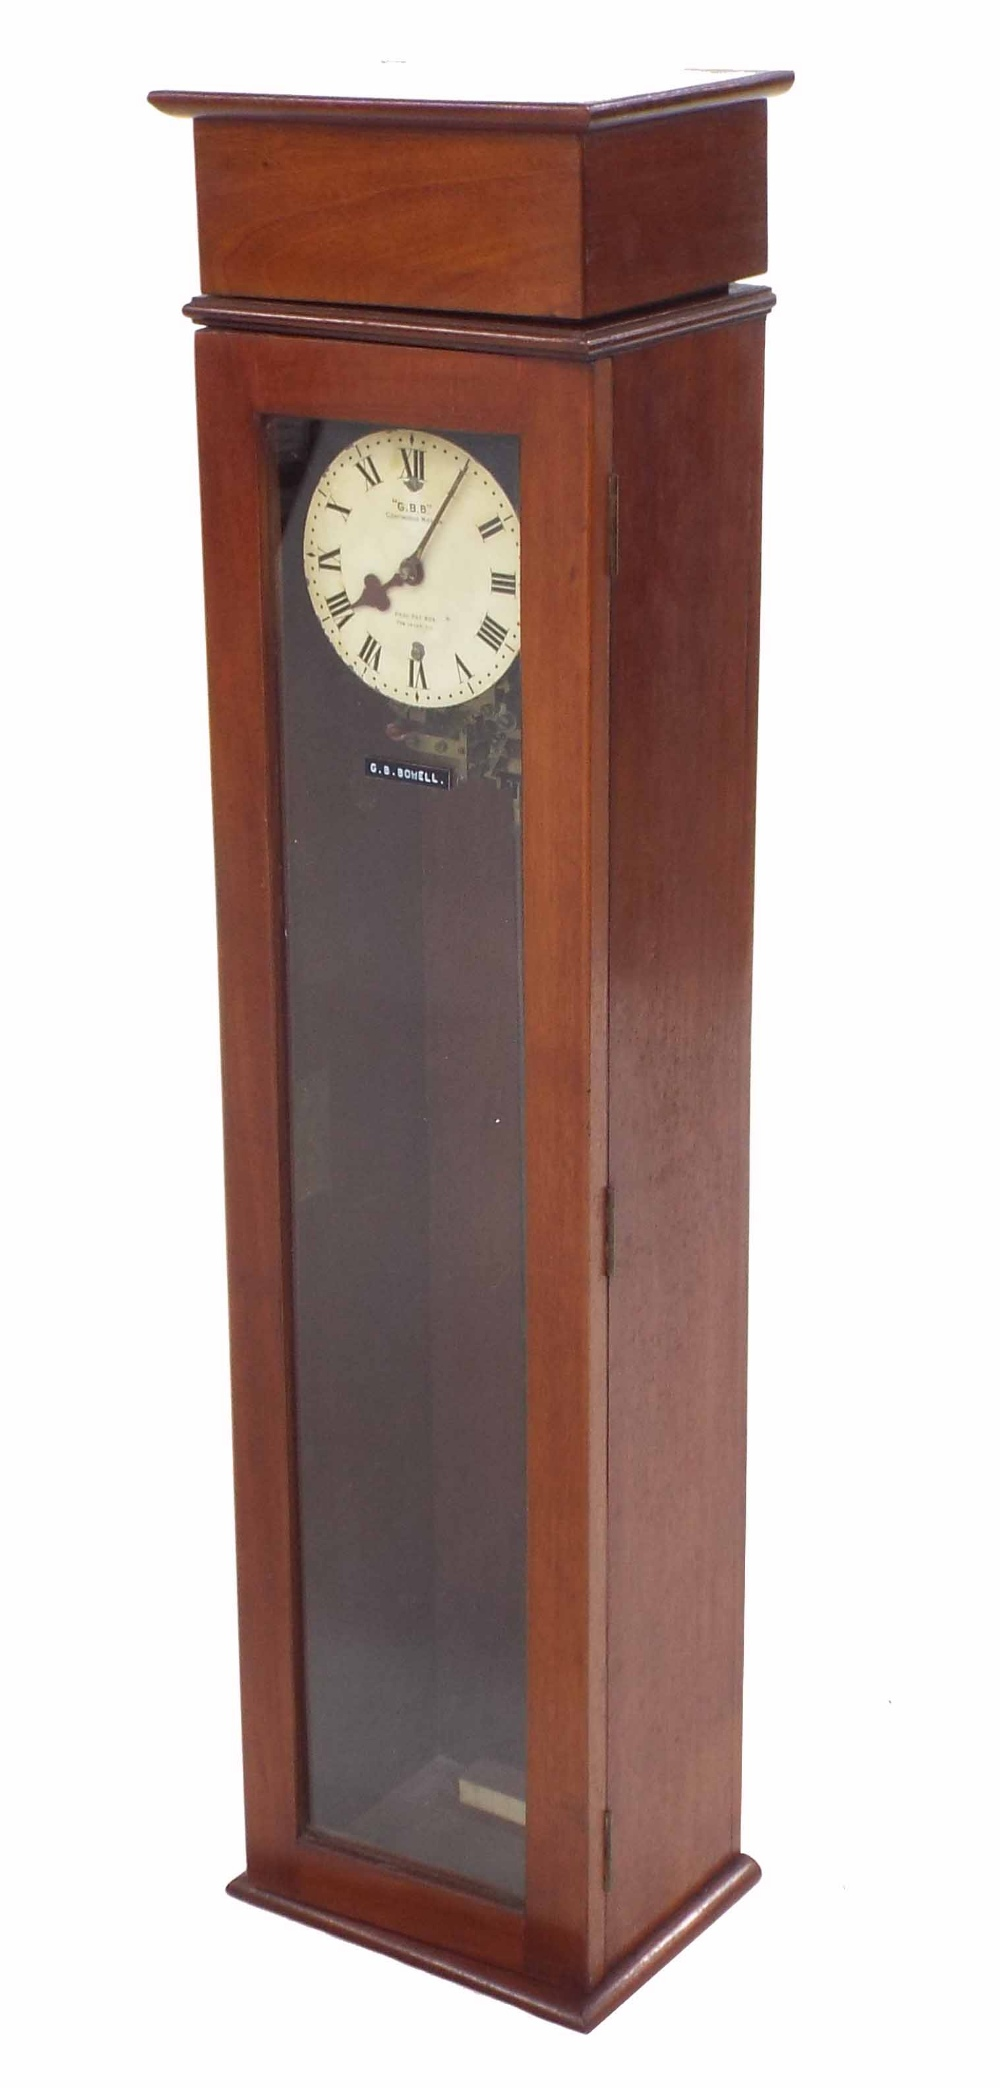 "Lot 1192 - Very early and rare G B Bowell ""Continuous Motion"" electric clock, constructed in 1929, the 5"""